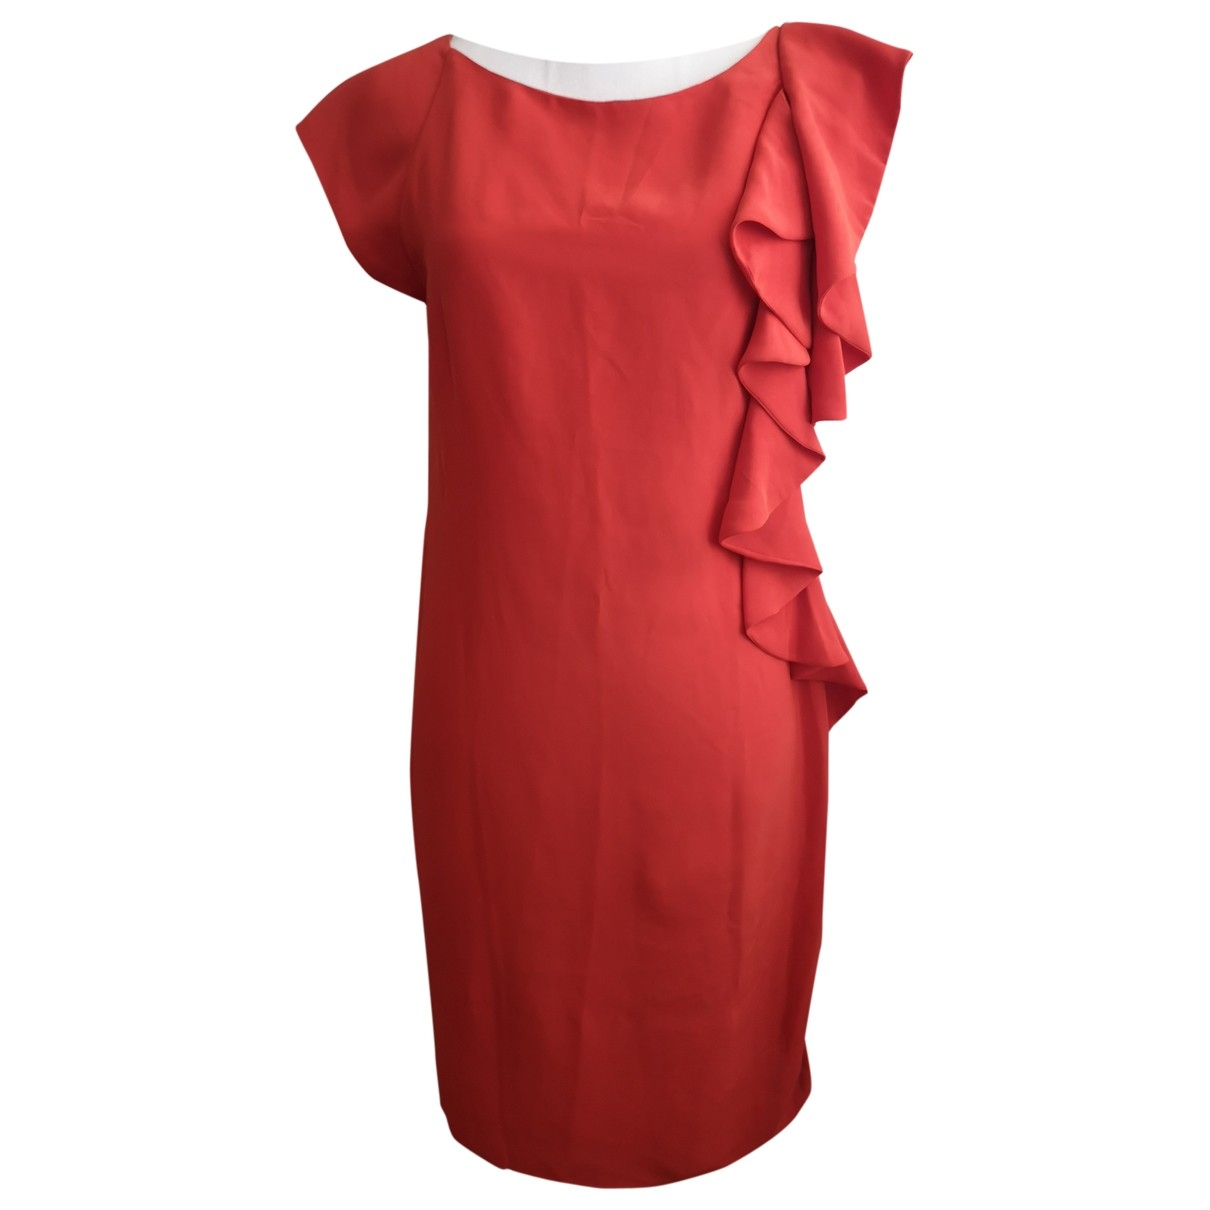 Non Signé / Unsigned \N dress for Women M International